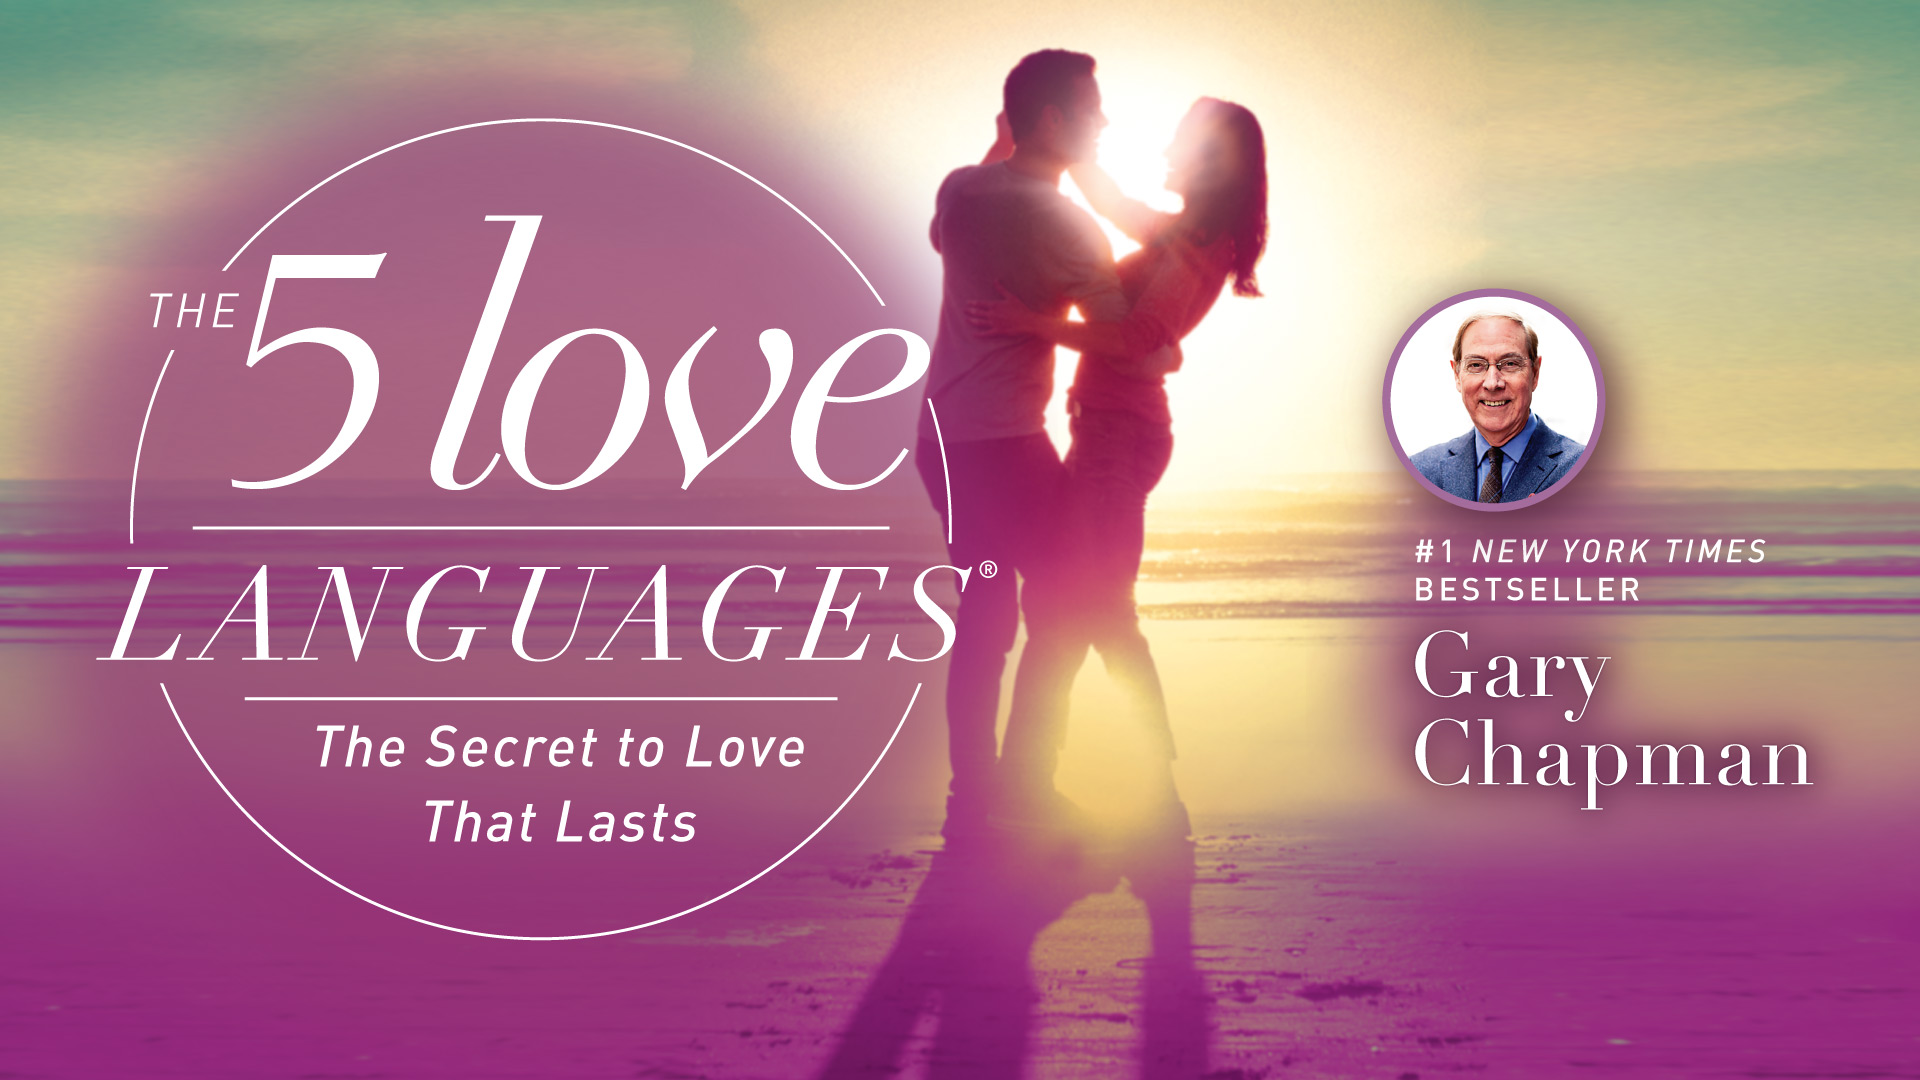 Tickets for Dr Gary Chapman and The 5 Love Languages Tour in Edmonton from BuzzTix